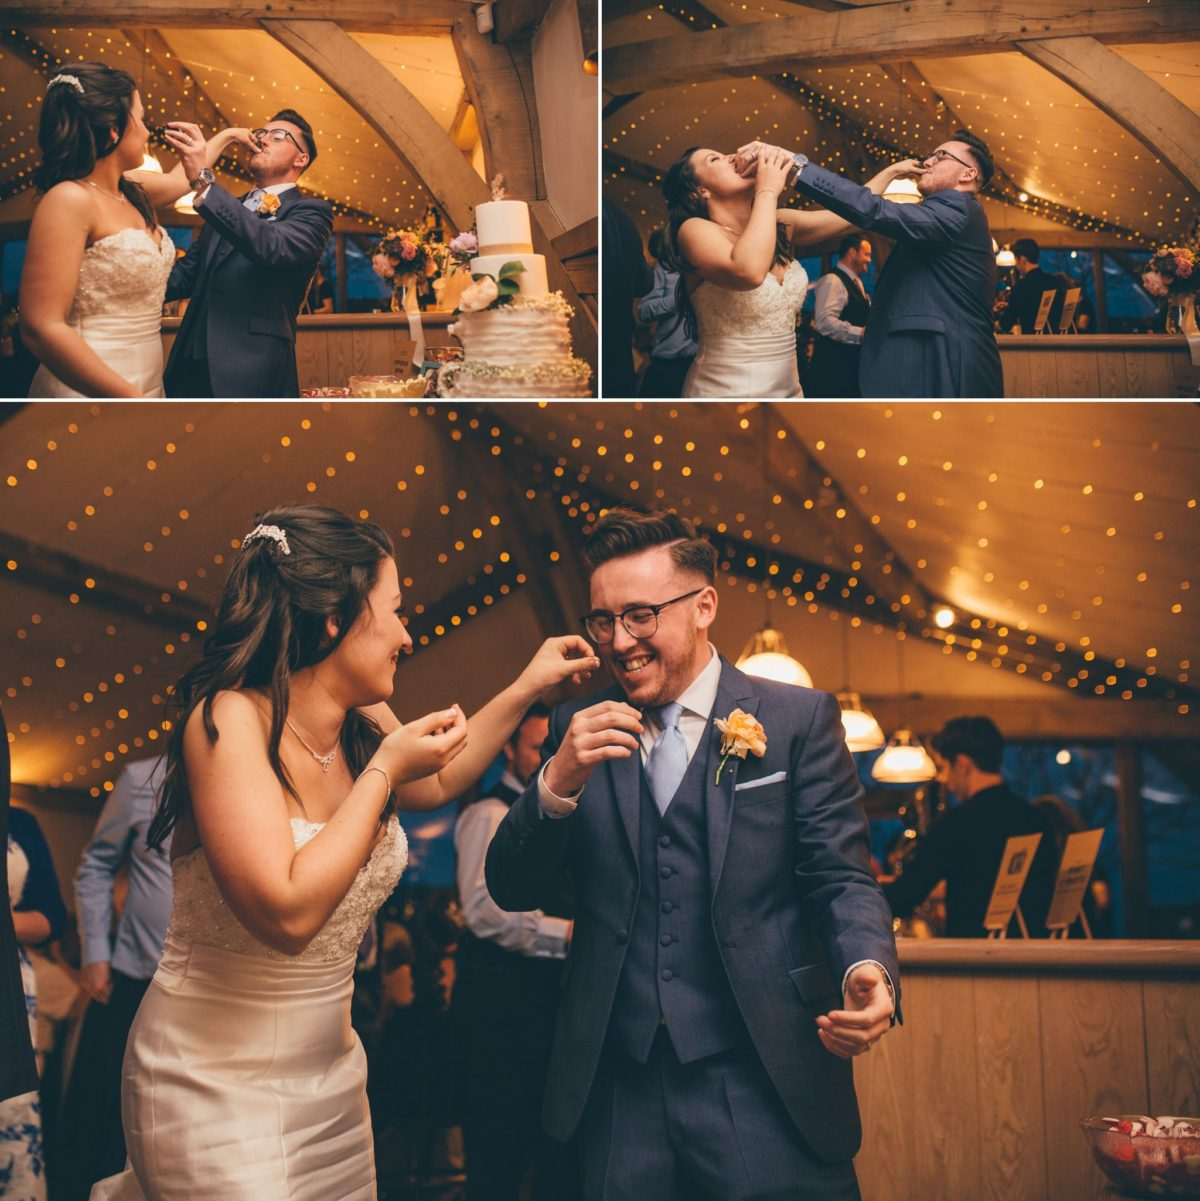 cripps_barn_gloucesterhsire_welsh_wedding_photographer_rachel_lambert_photography_jordan_amy_ 132